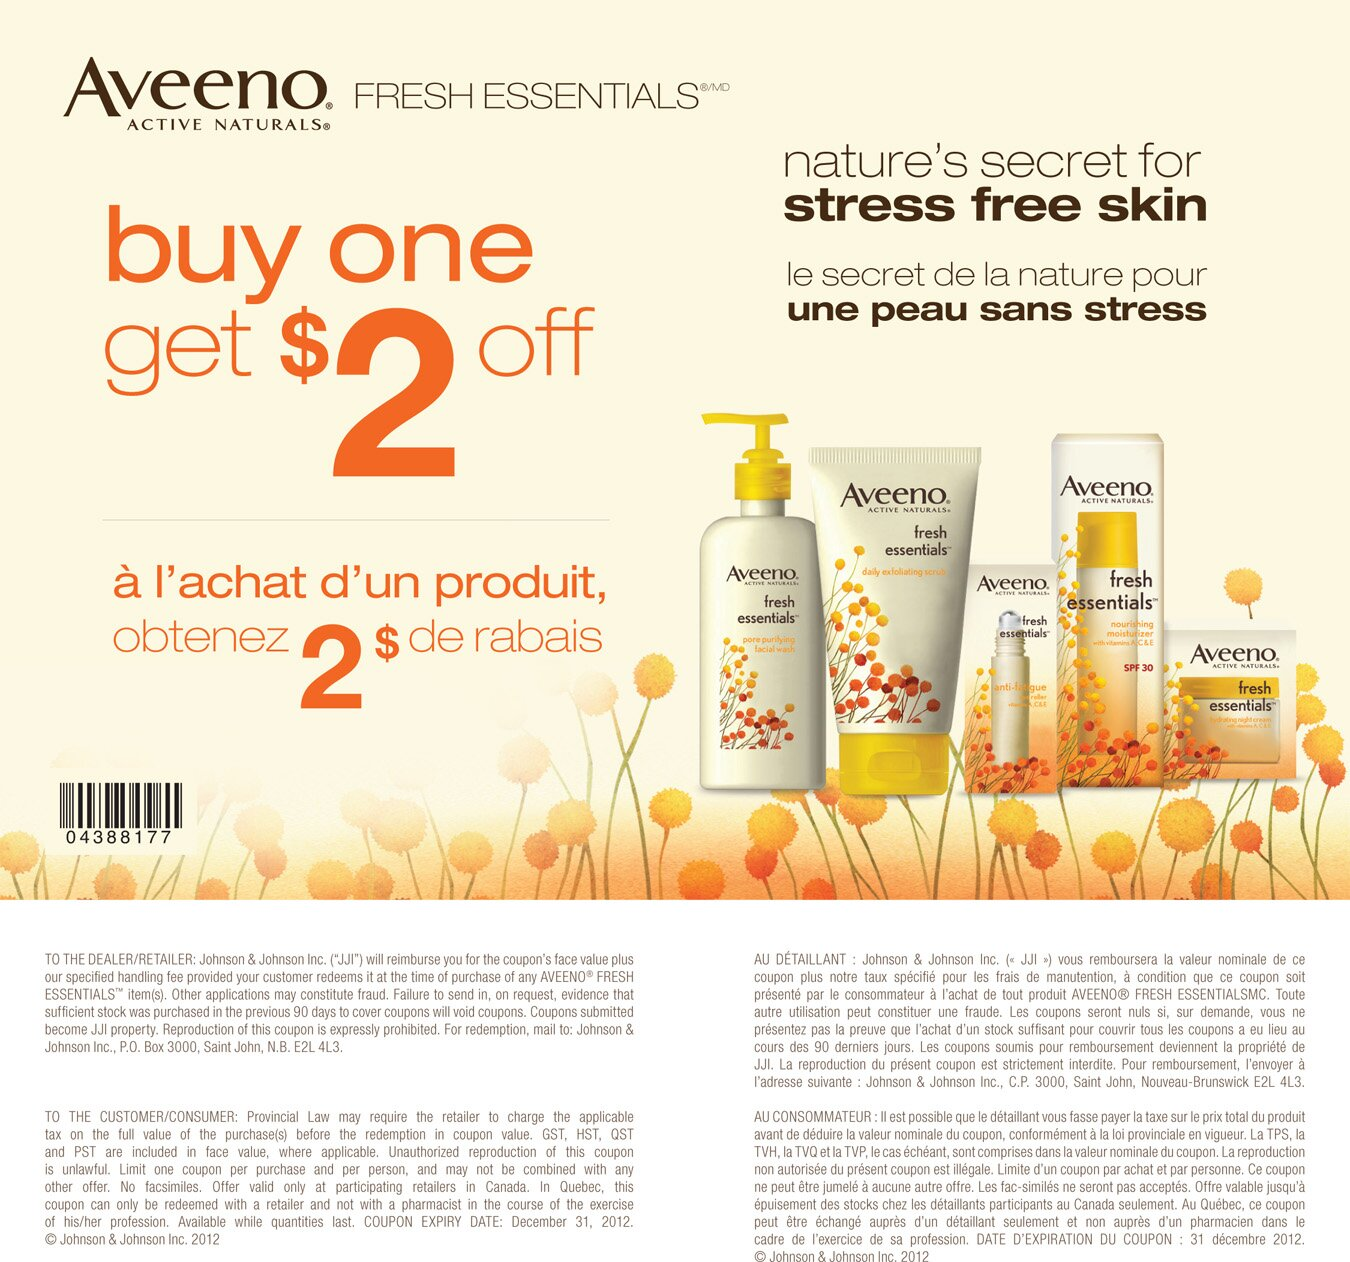 $2 off Aveeno Fresh Essentials Printable